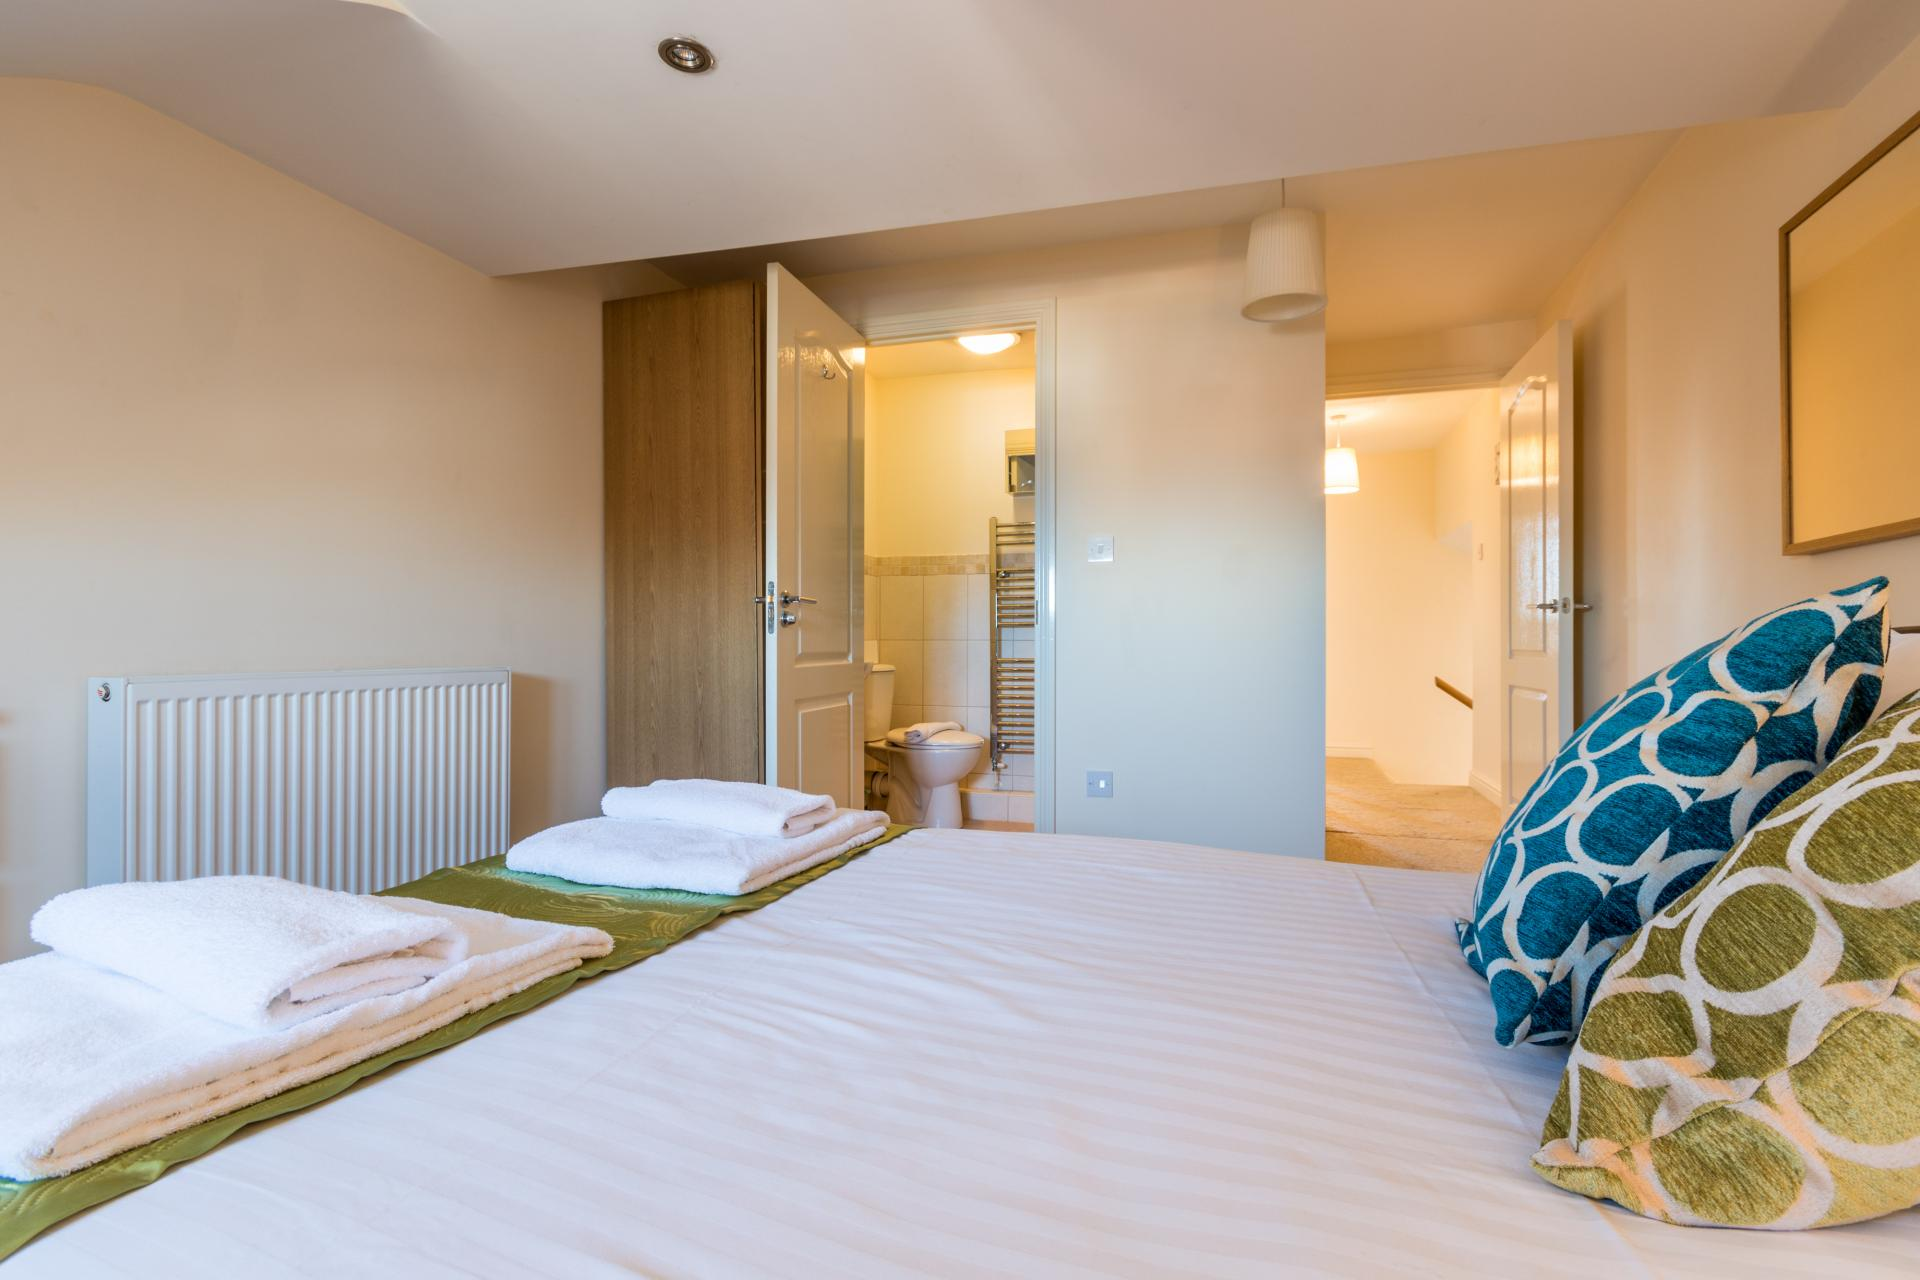 Double bed at Westlecot House Apartments